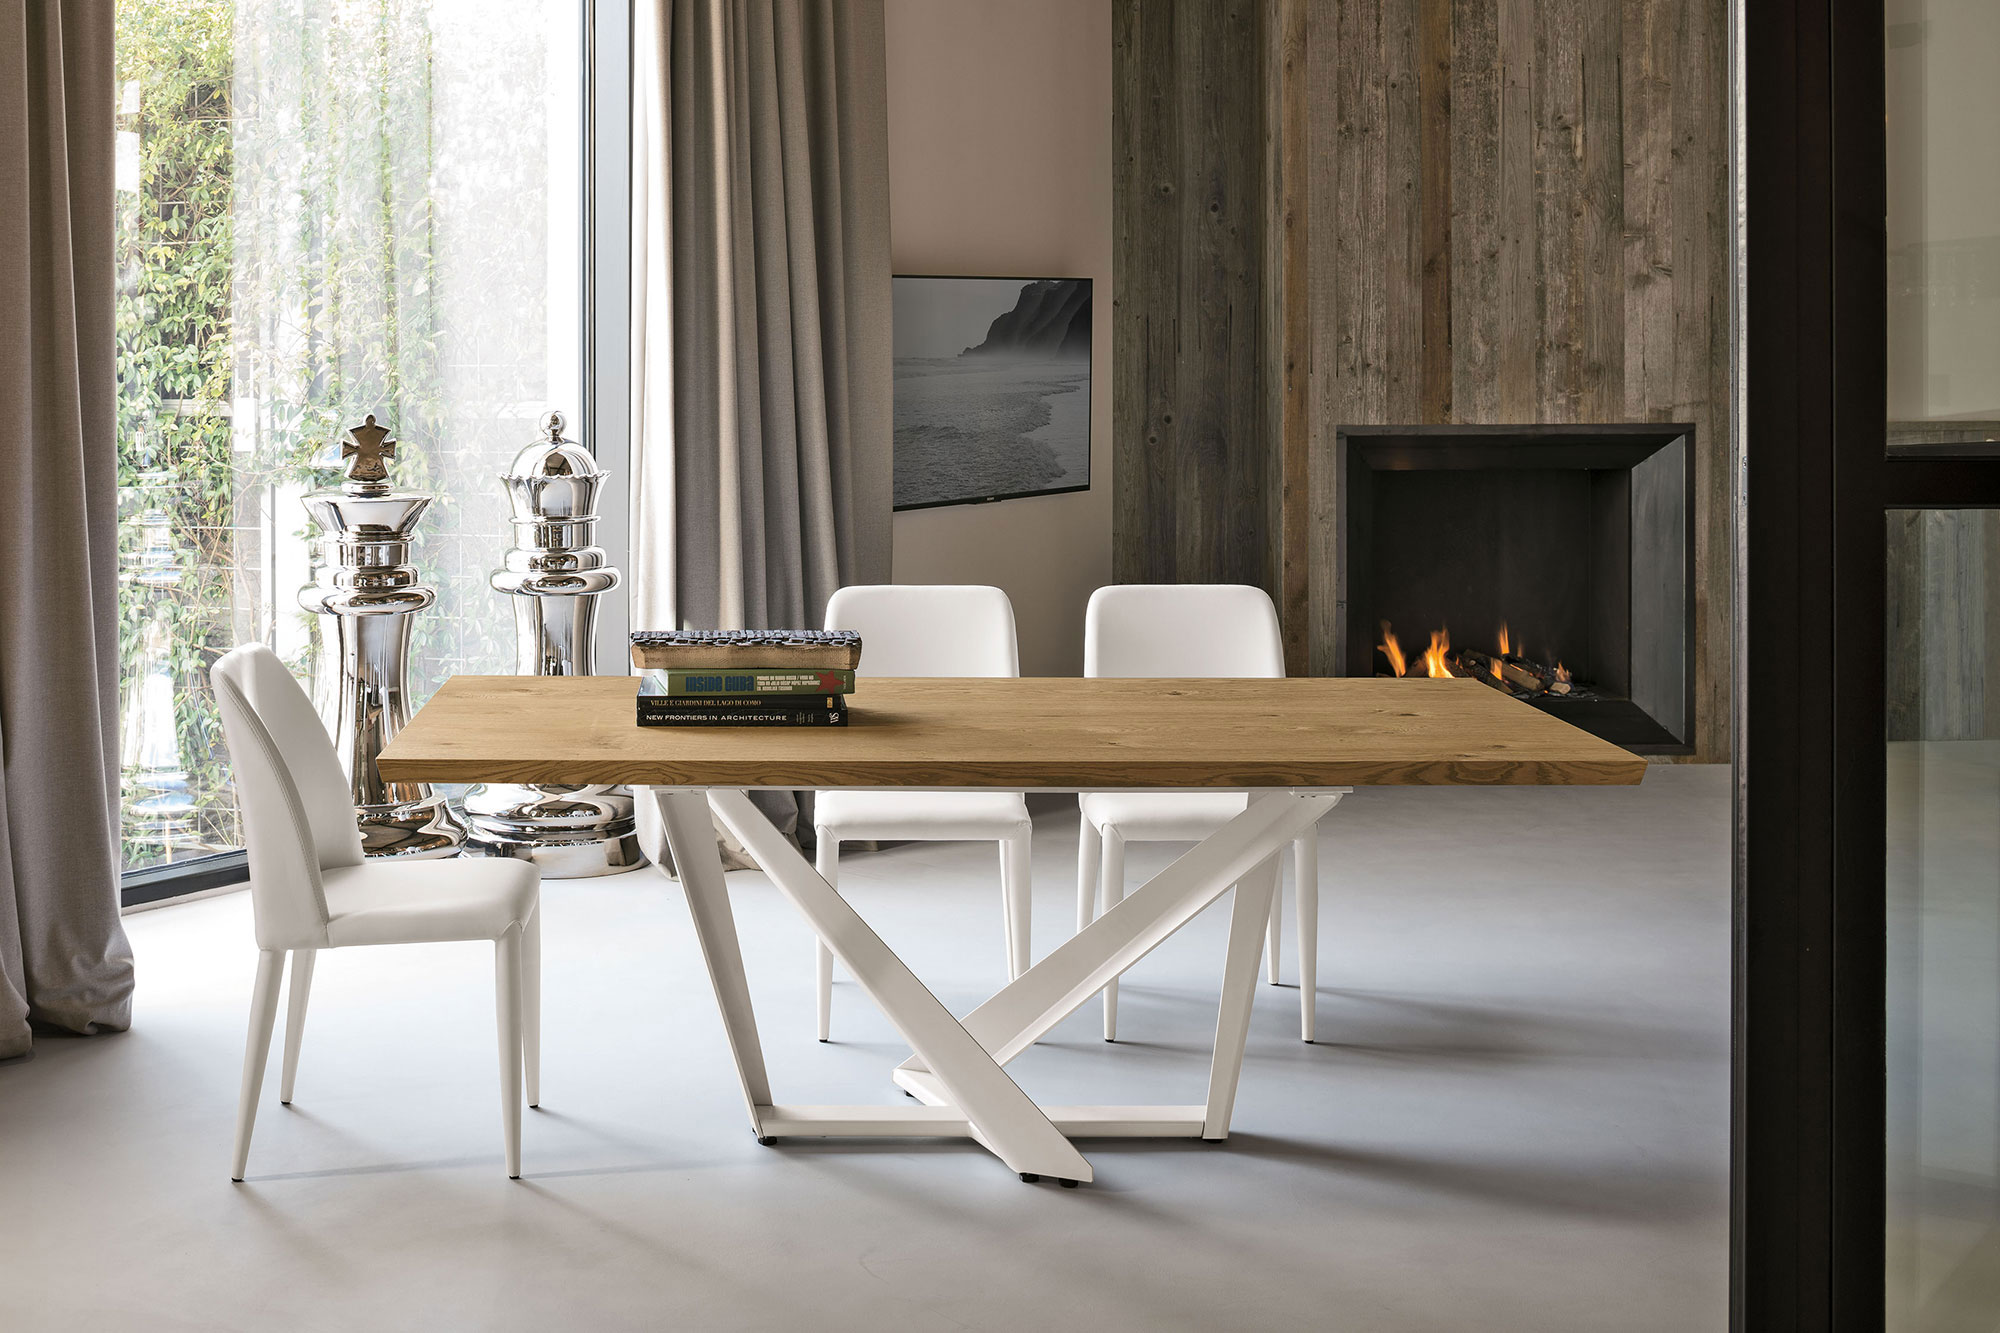 table, modern table, wooden table, trapezi, chairs, white chairs, karekles, accessories, dining table, kitchen table, andreotti, andreotti furniture, epipla, furniture, limassol, cyprus